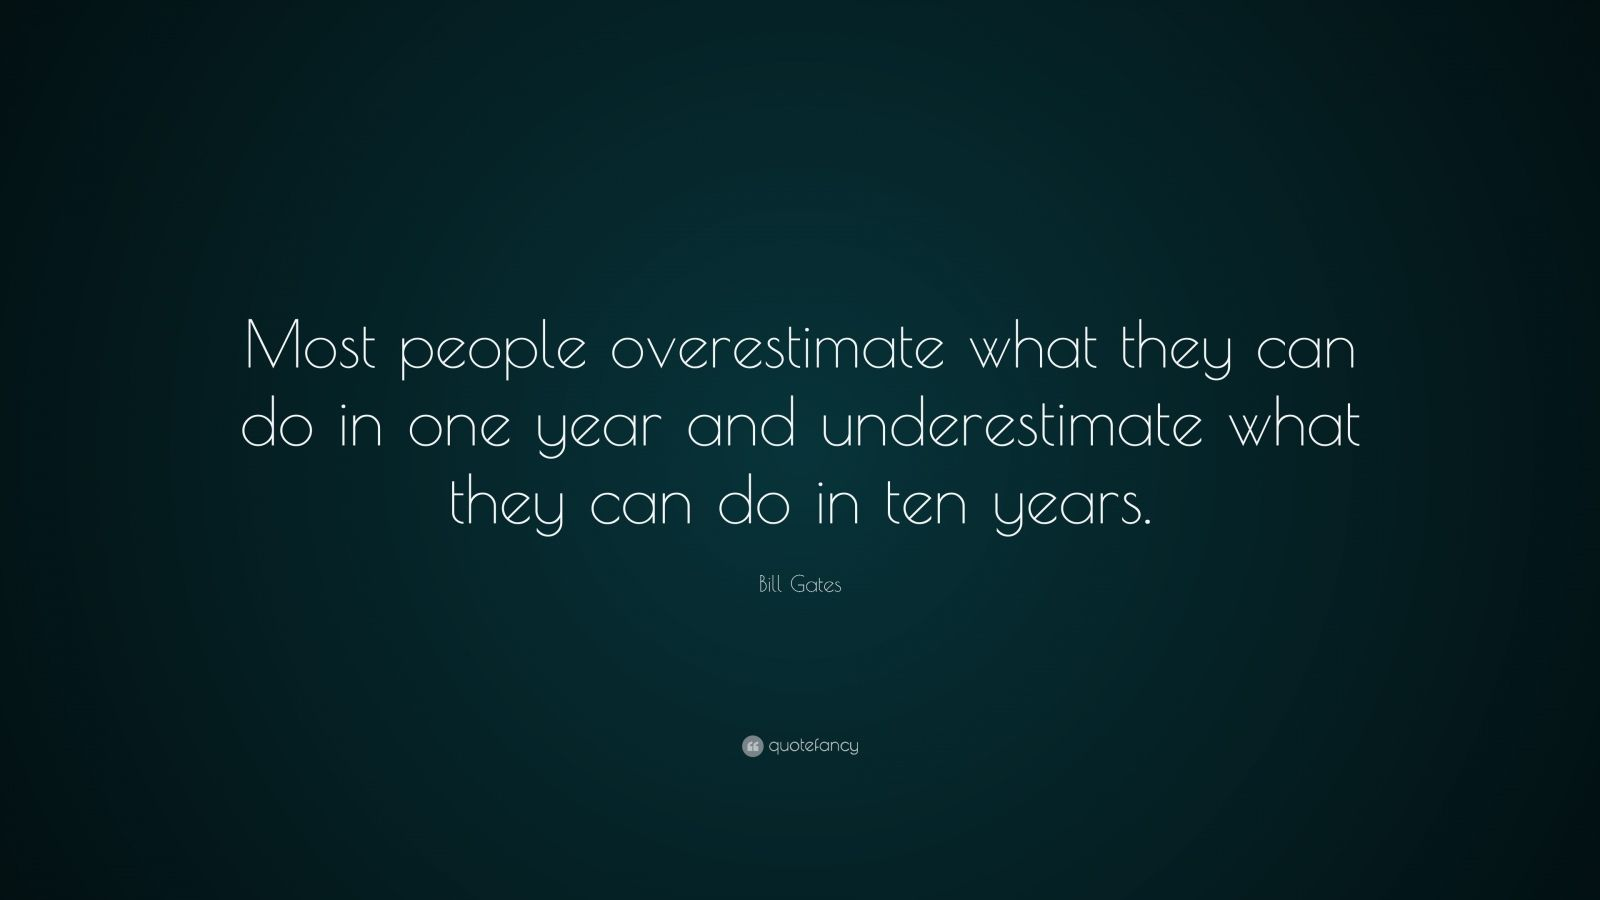 Achieve Quotes Wallpaper Bill Gates Quote Most People Overestimate What They Can